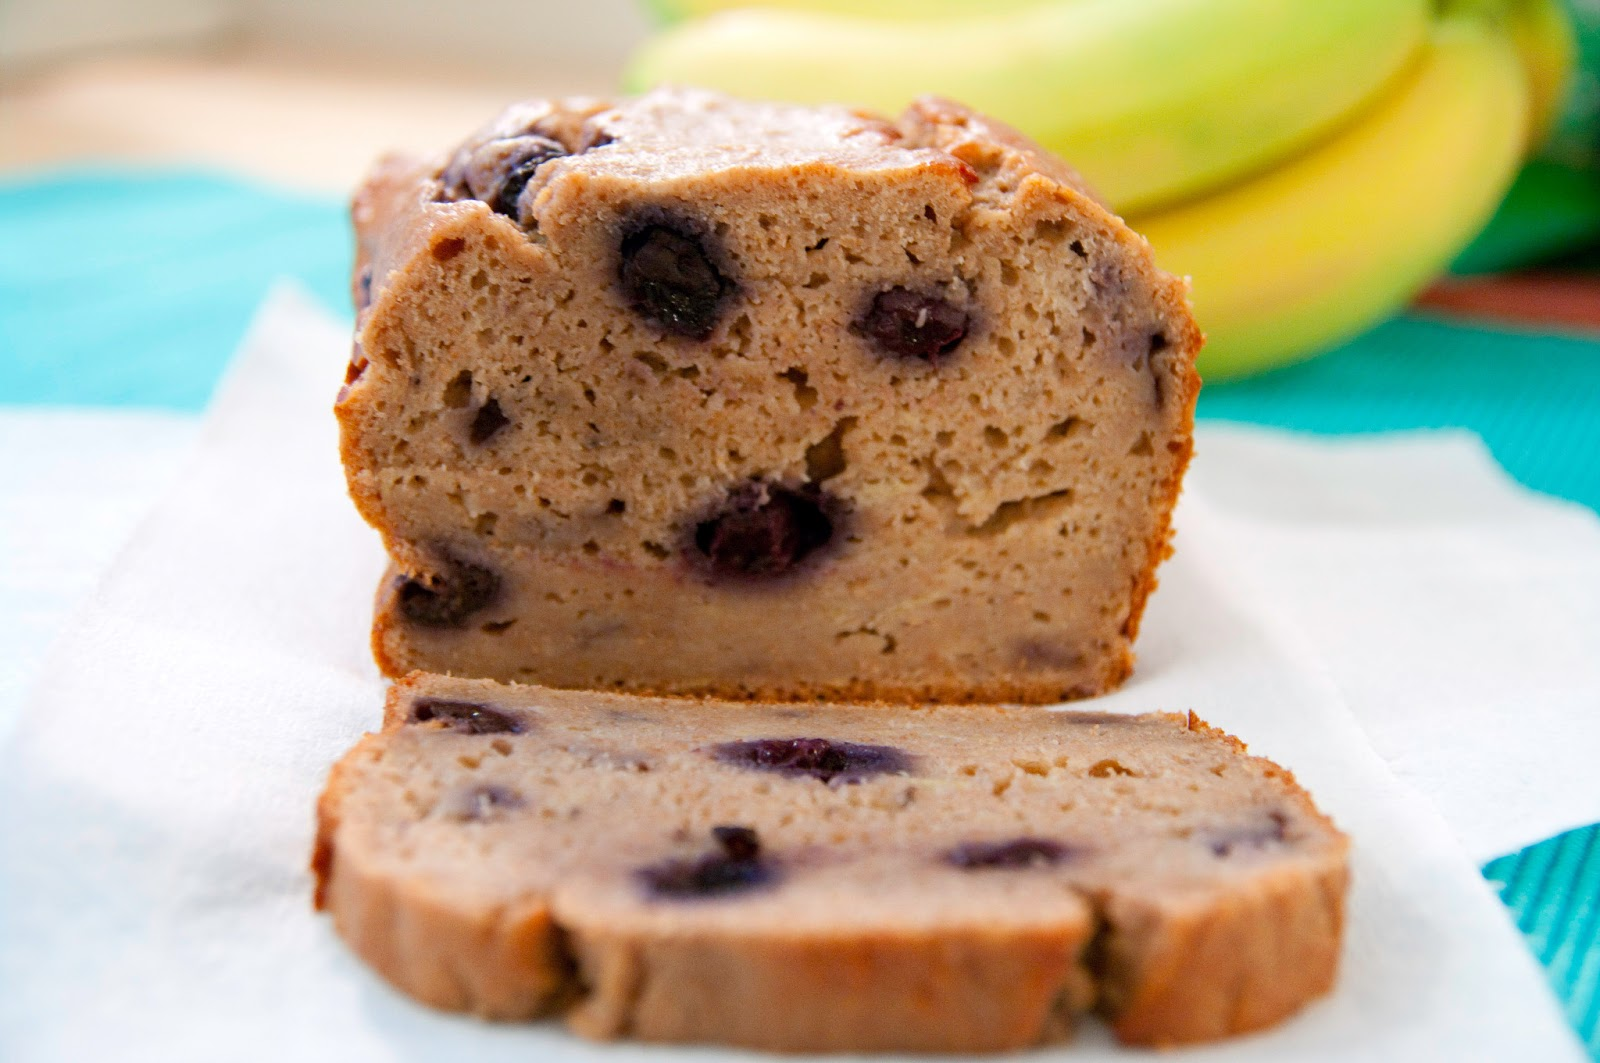 Blog About Food: Greek Yogurt Blueberry Banana Bread